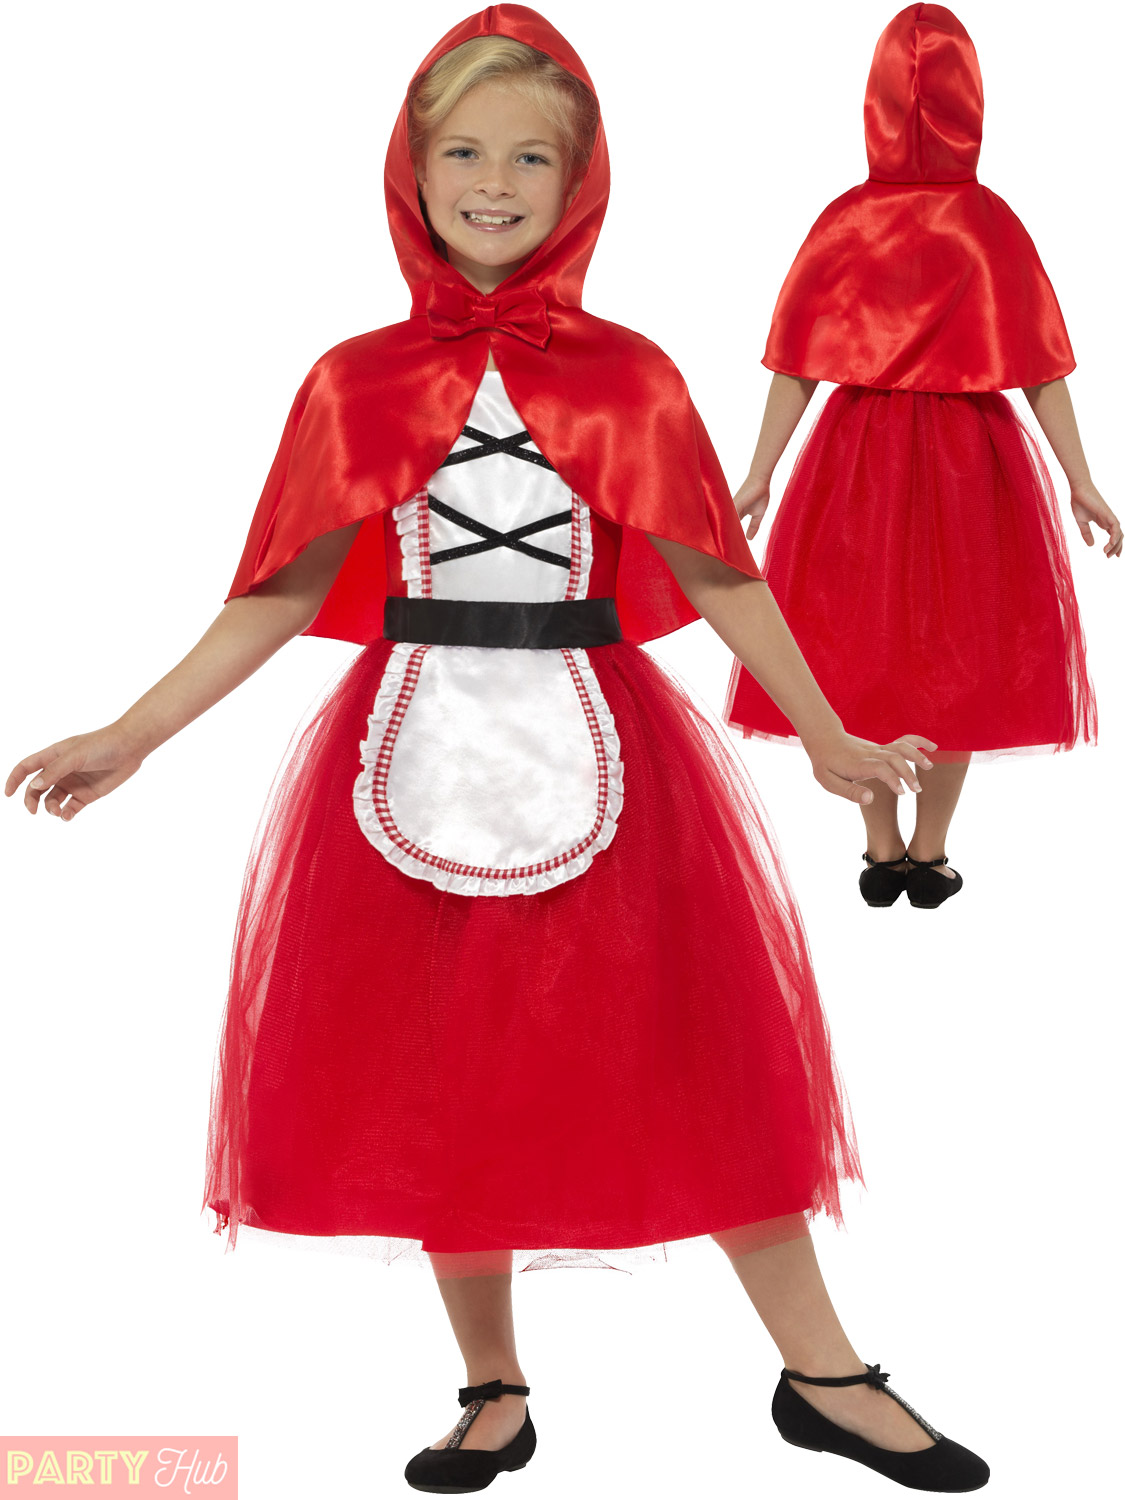 Red Riding Hood Costume Shoes